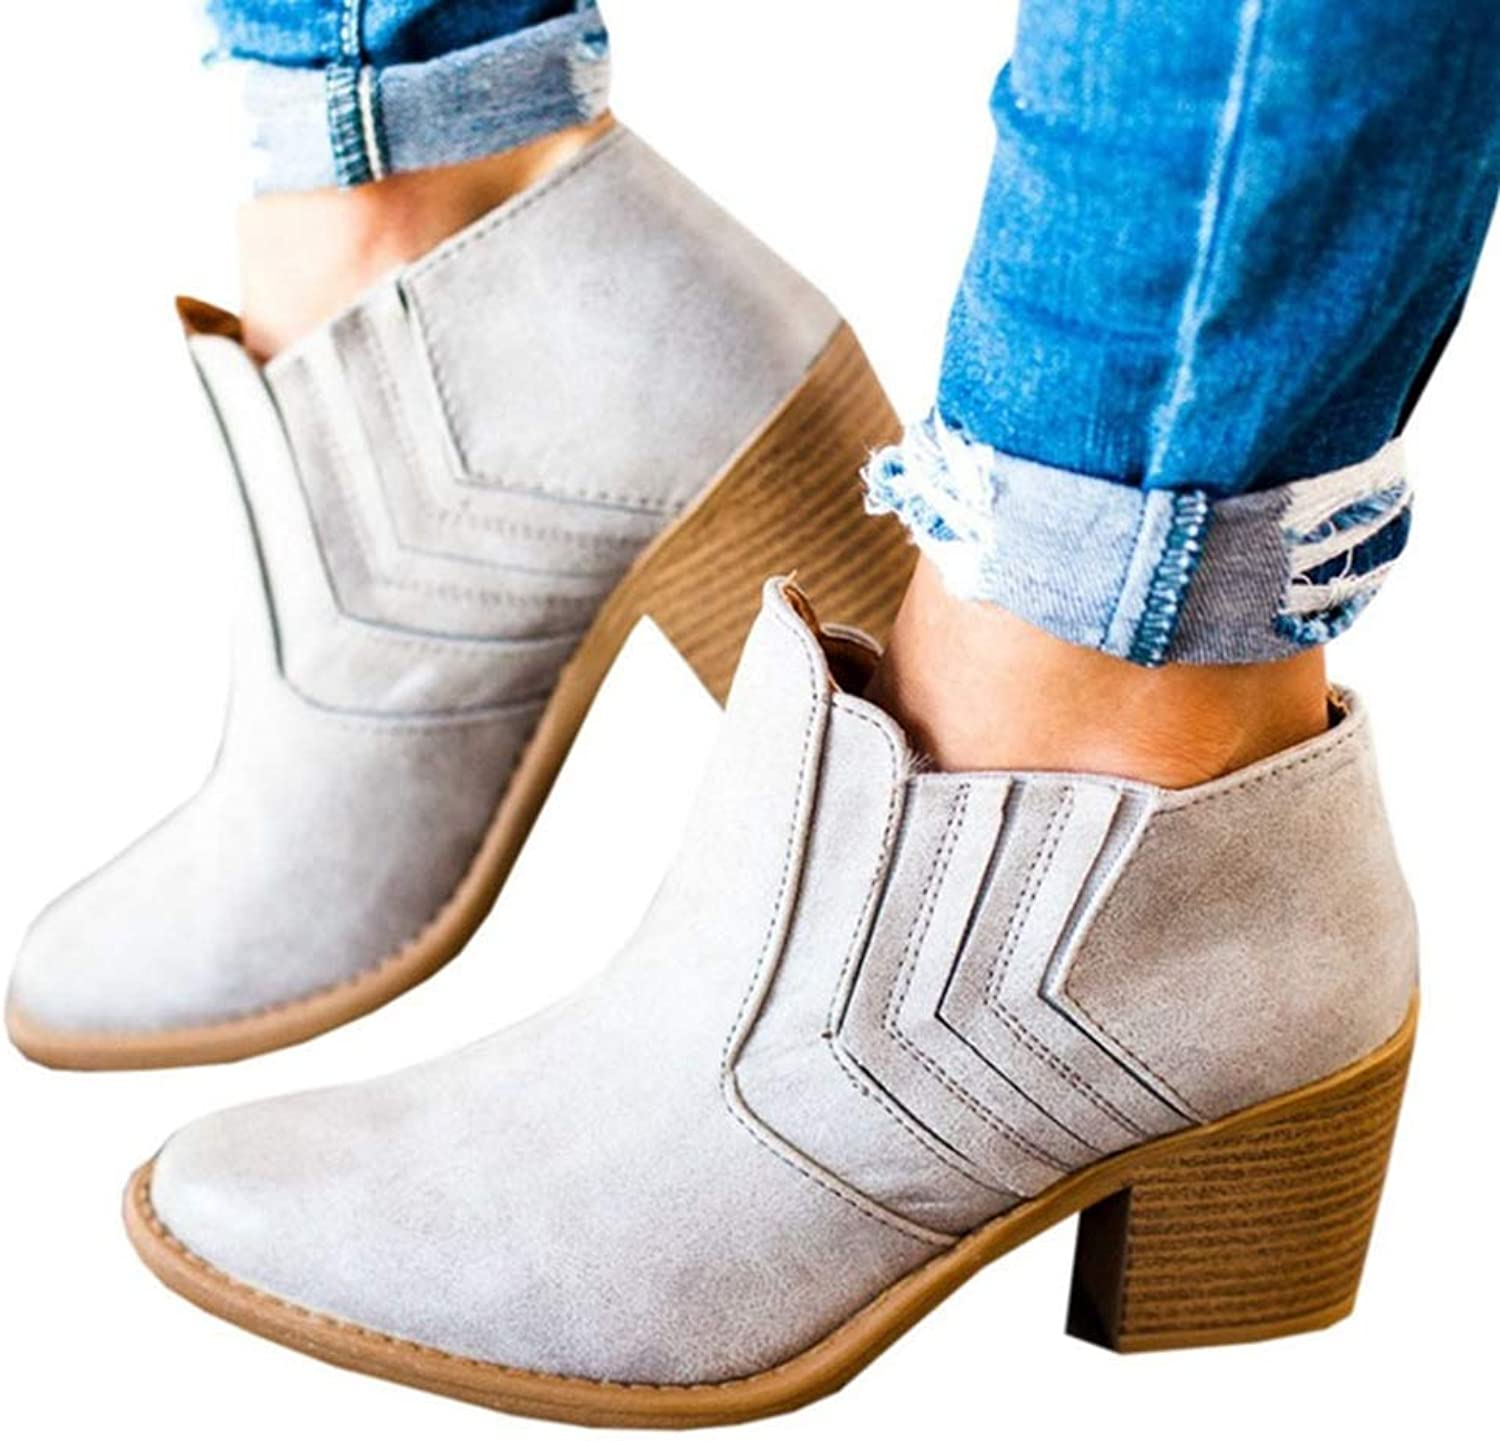 JOYBI Women Winter Round Toe Ankle Boots Non Slip Comfortable Fashion Thick Stacked Mid Heel Short Boot